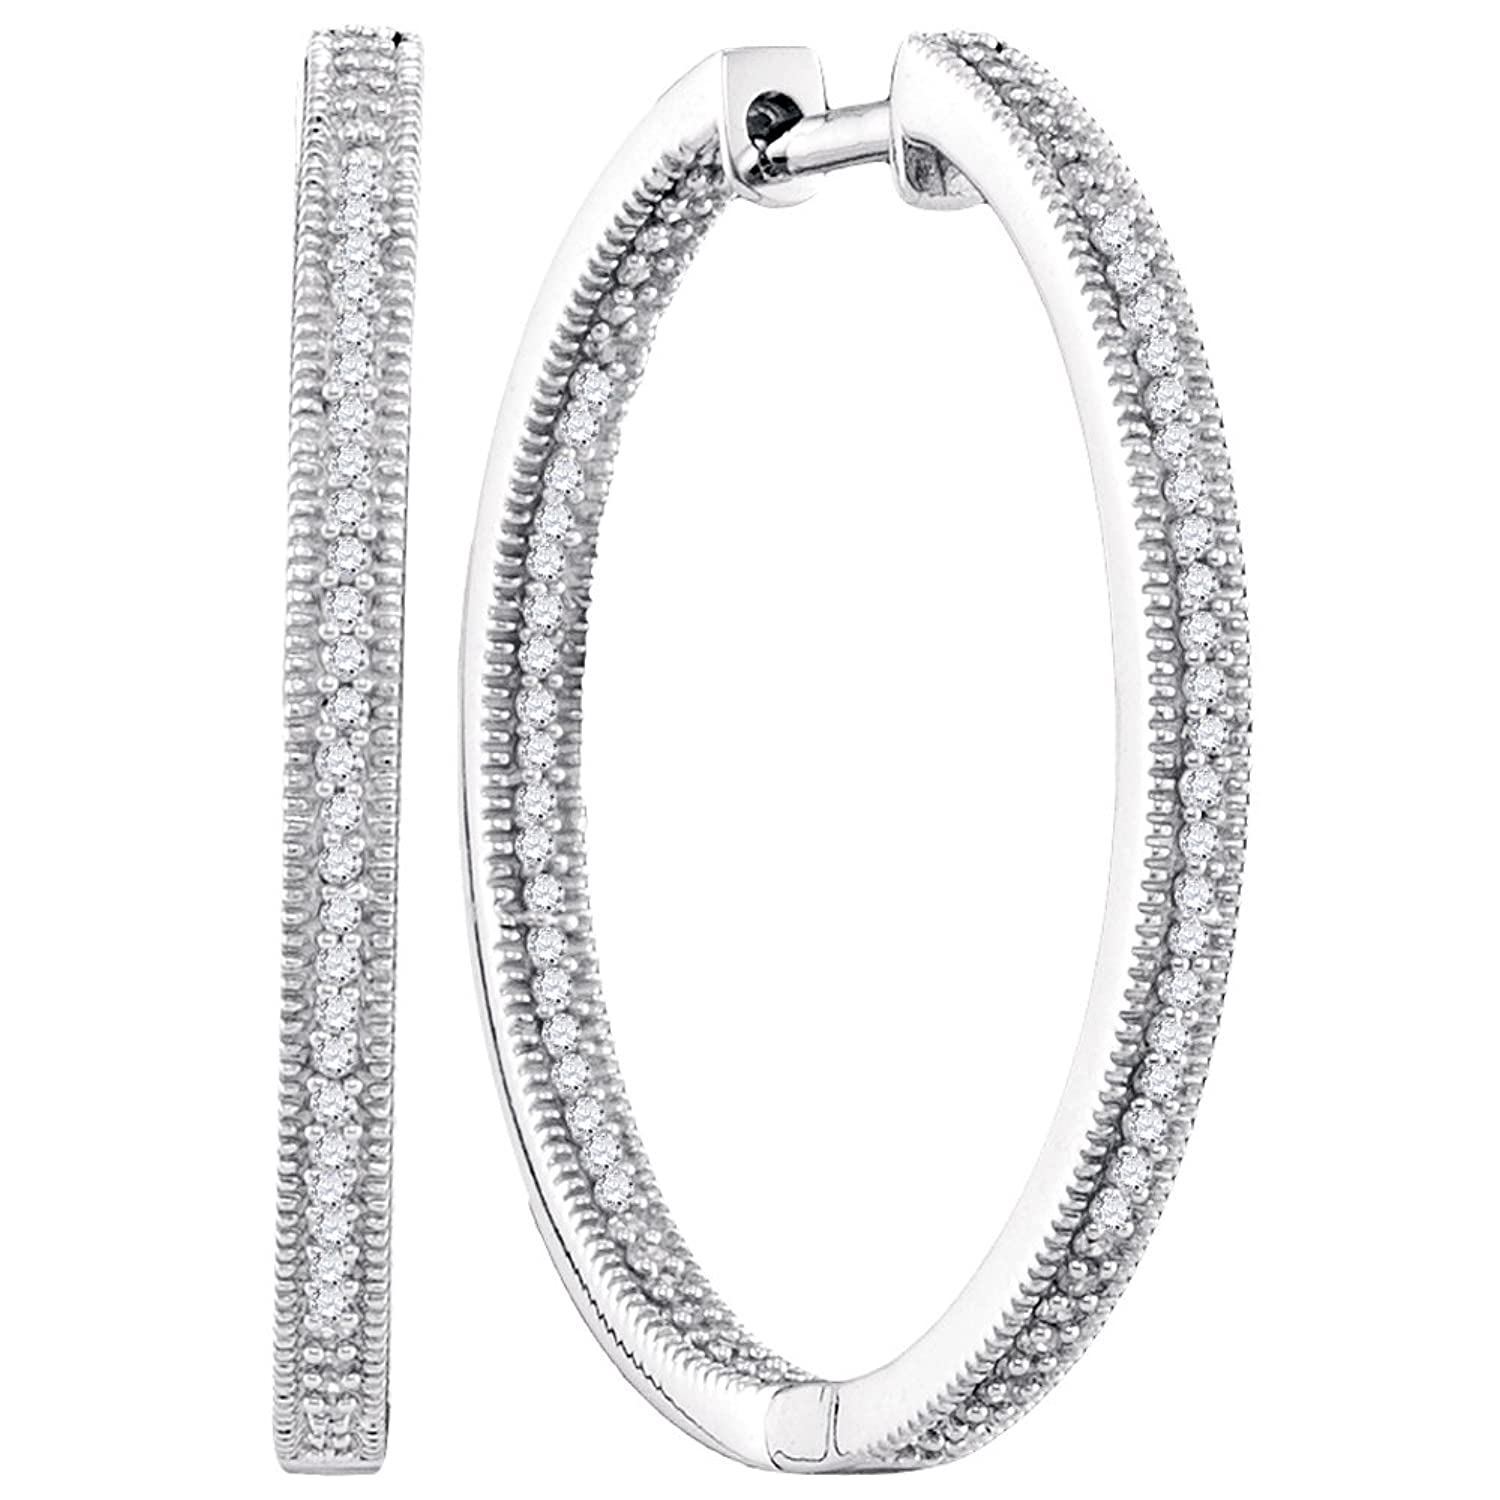 0.50 Carat (ctw) 10K White Gold Round Diamond Ladies Millgrain In and Out Fashion Hoop Earrings 1/2 CT